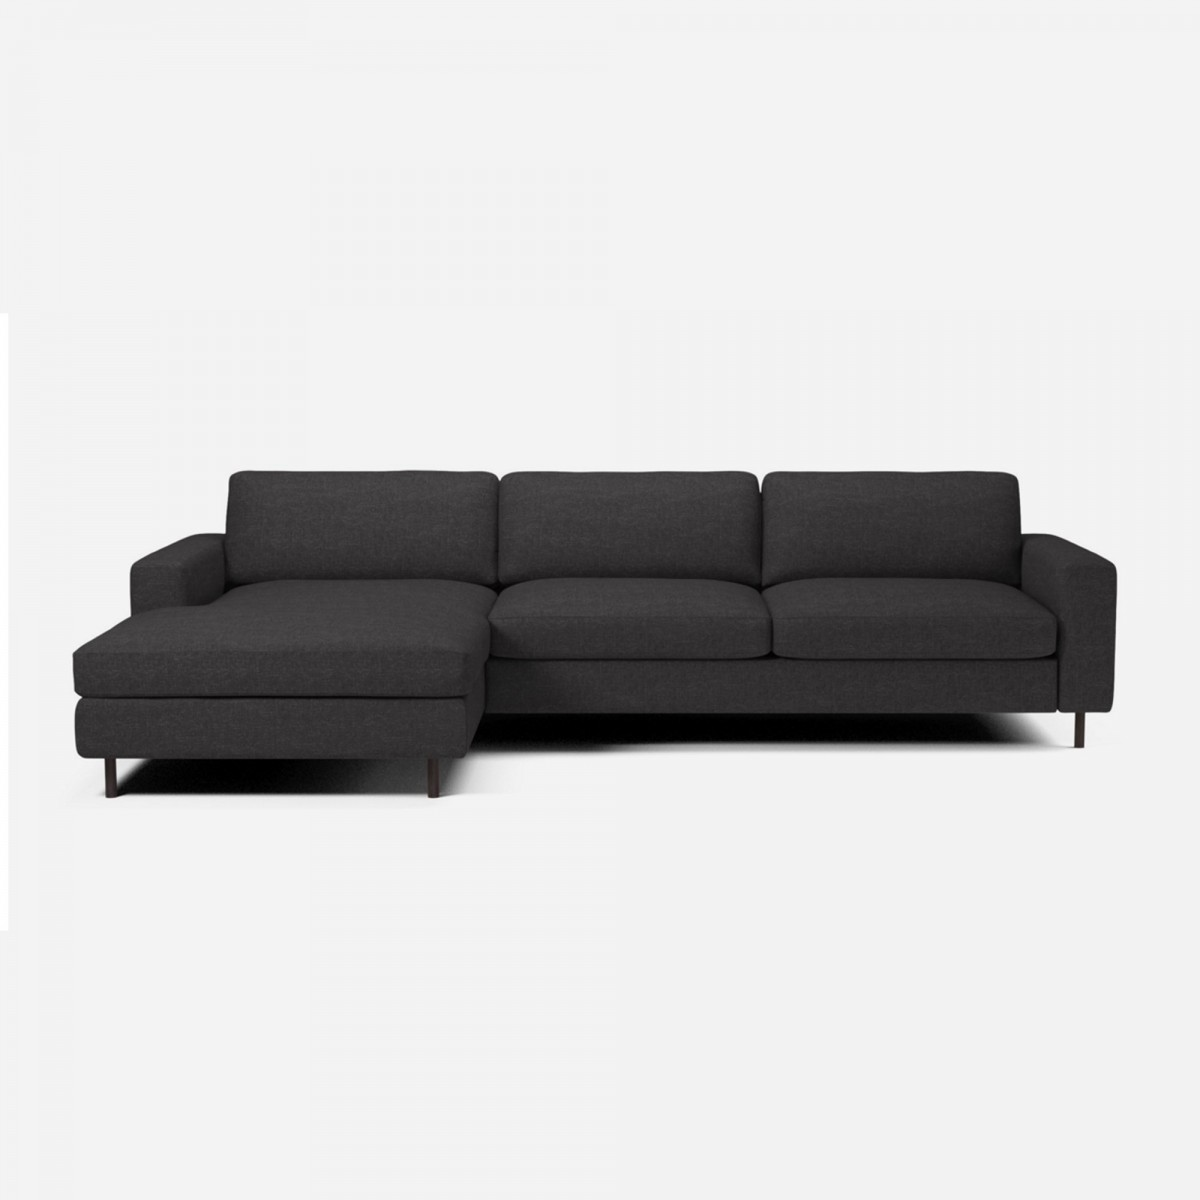 scandinavia 3 seater sofa with chaise longue bolia. Black Bedroom Furniture Sets. Home Design Ideas